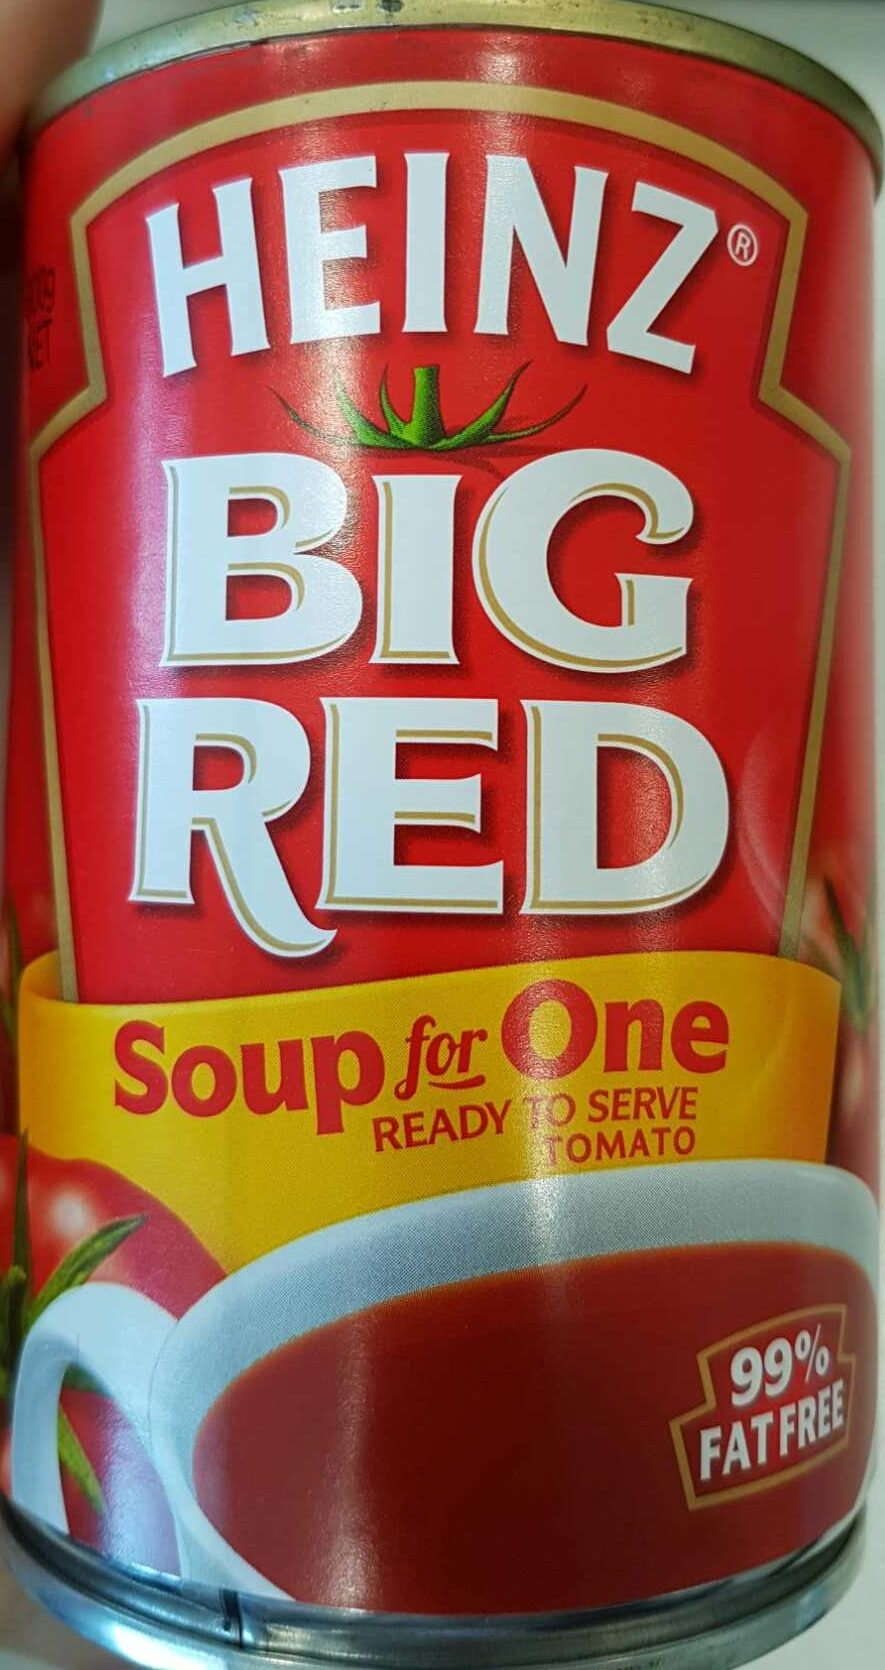 Heinz big red soup for one - Product